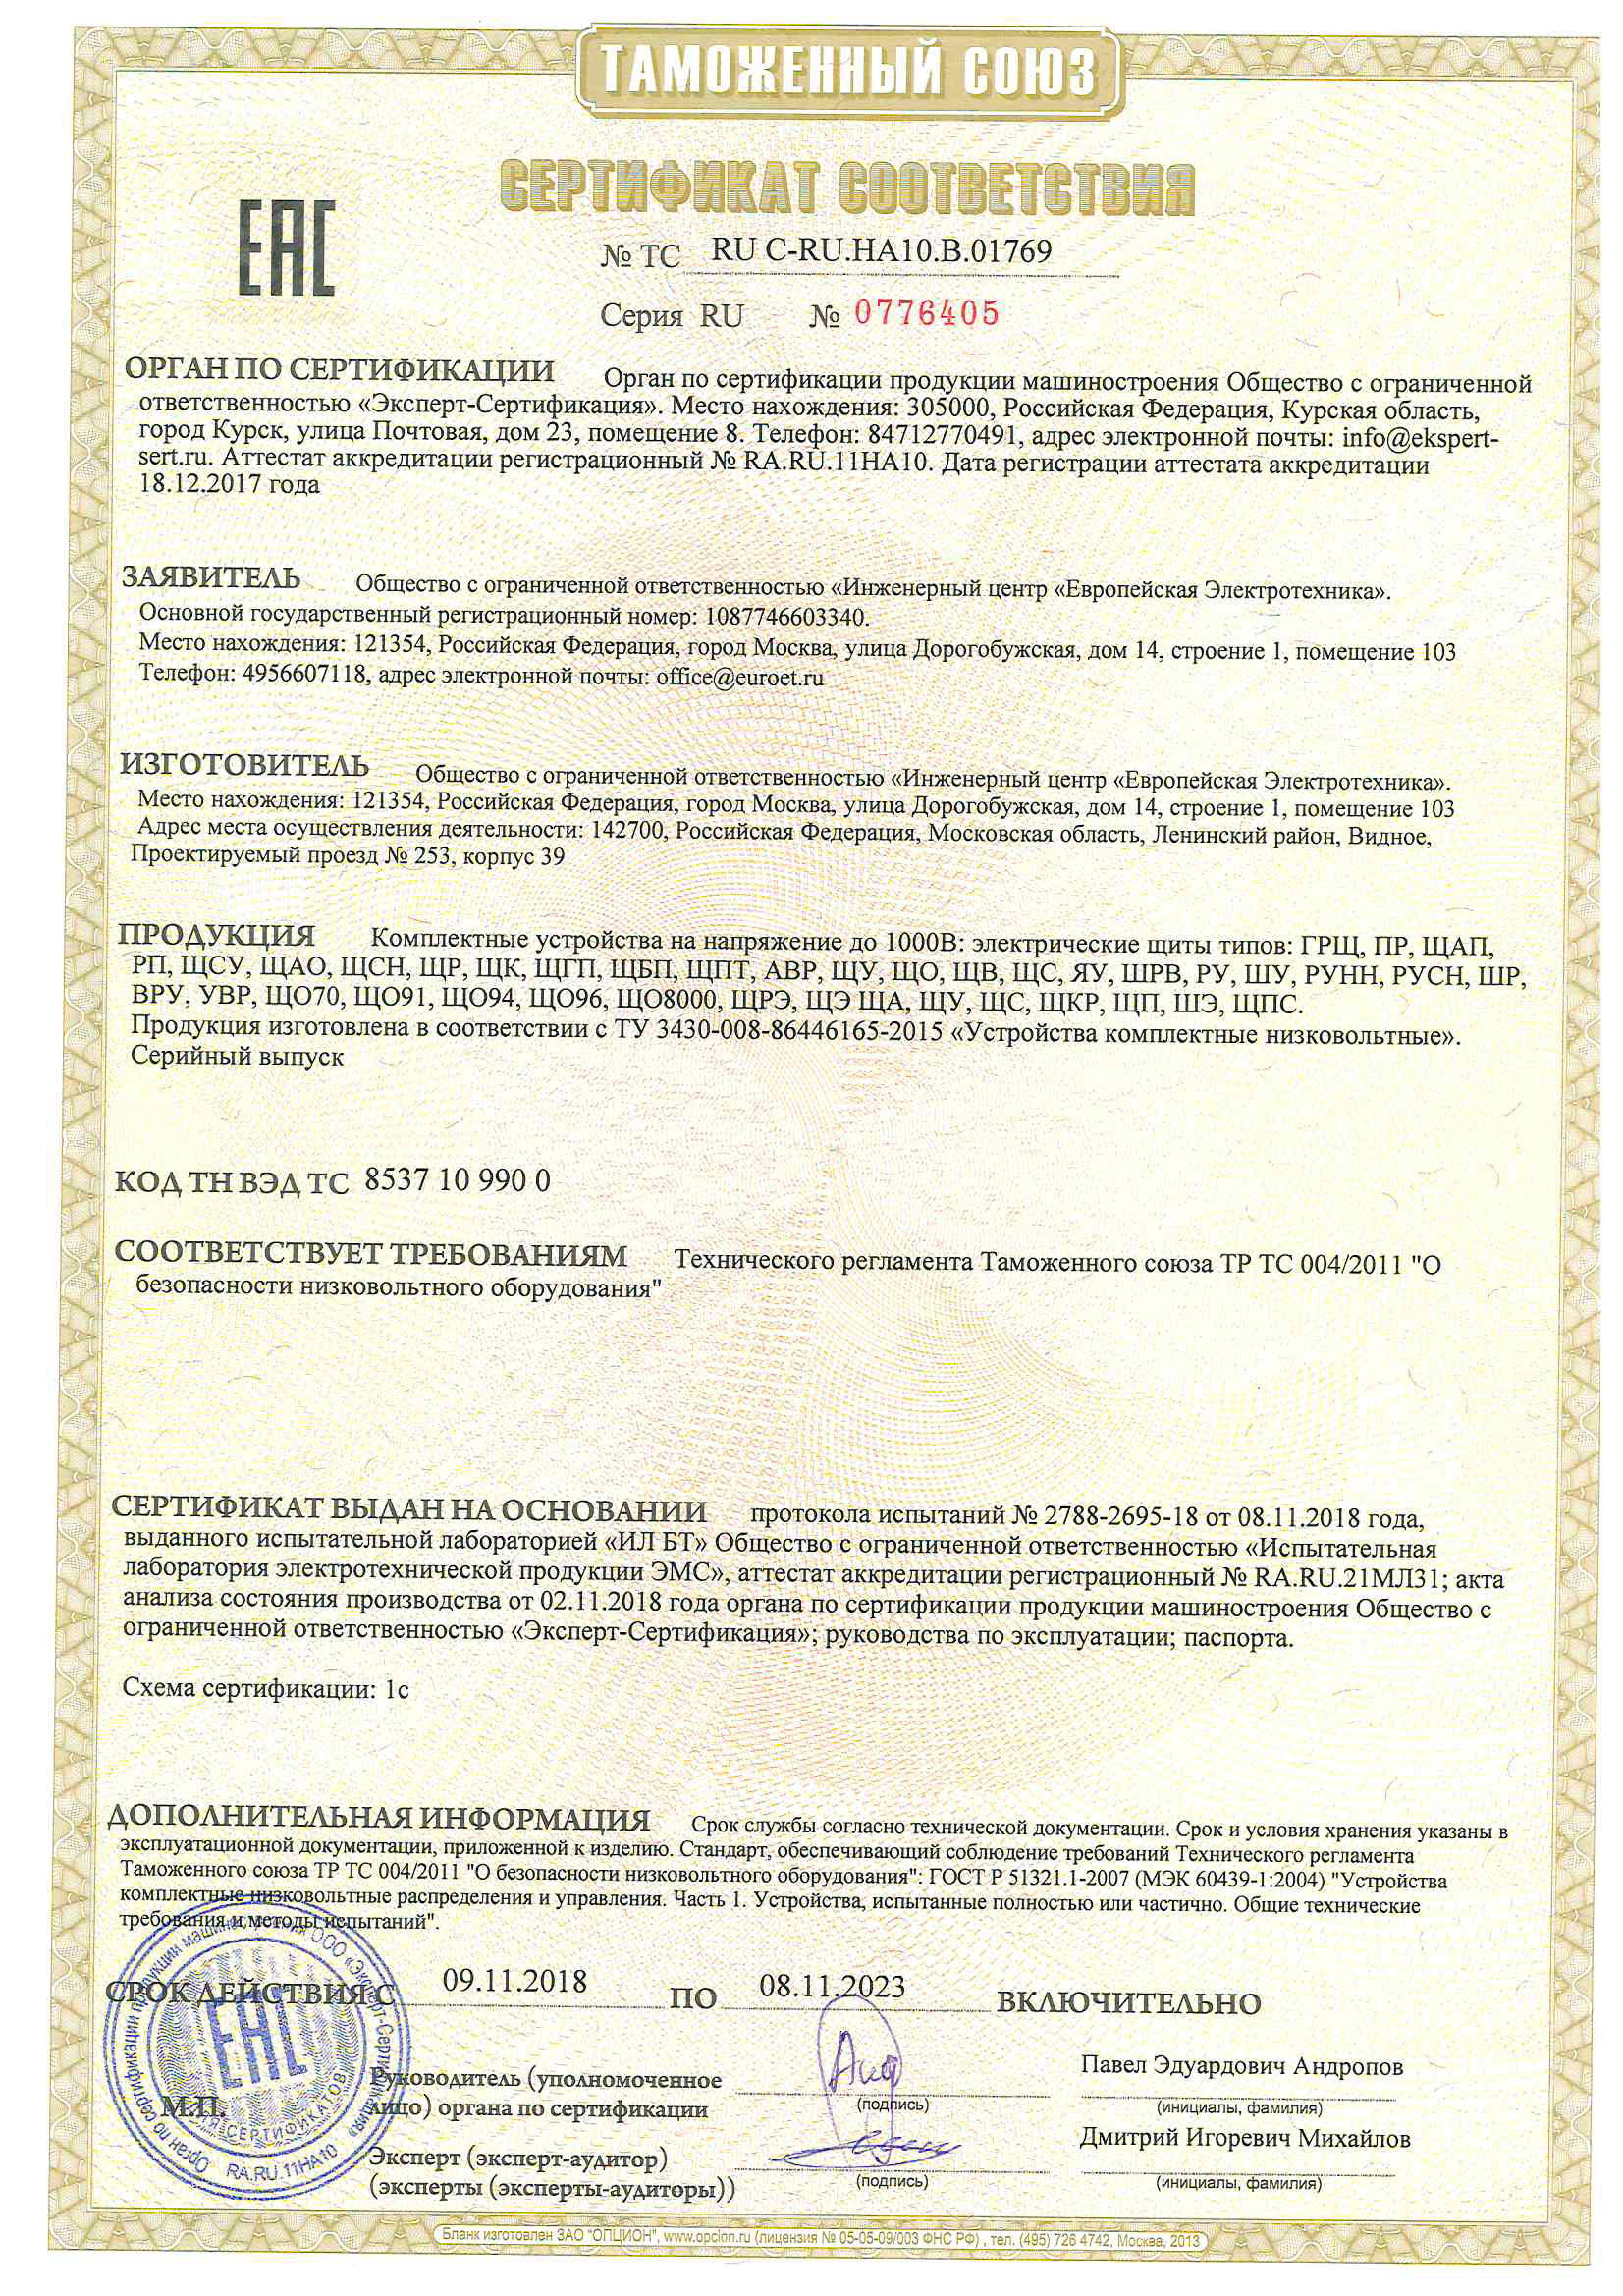 Certificate of conformity to Technical Specifications for Low-Voltage Electrical Equipment